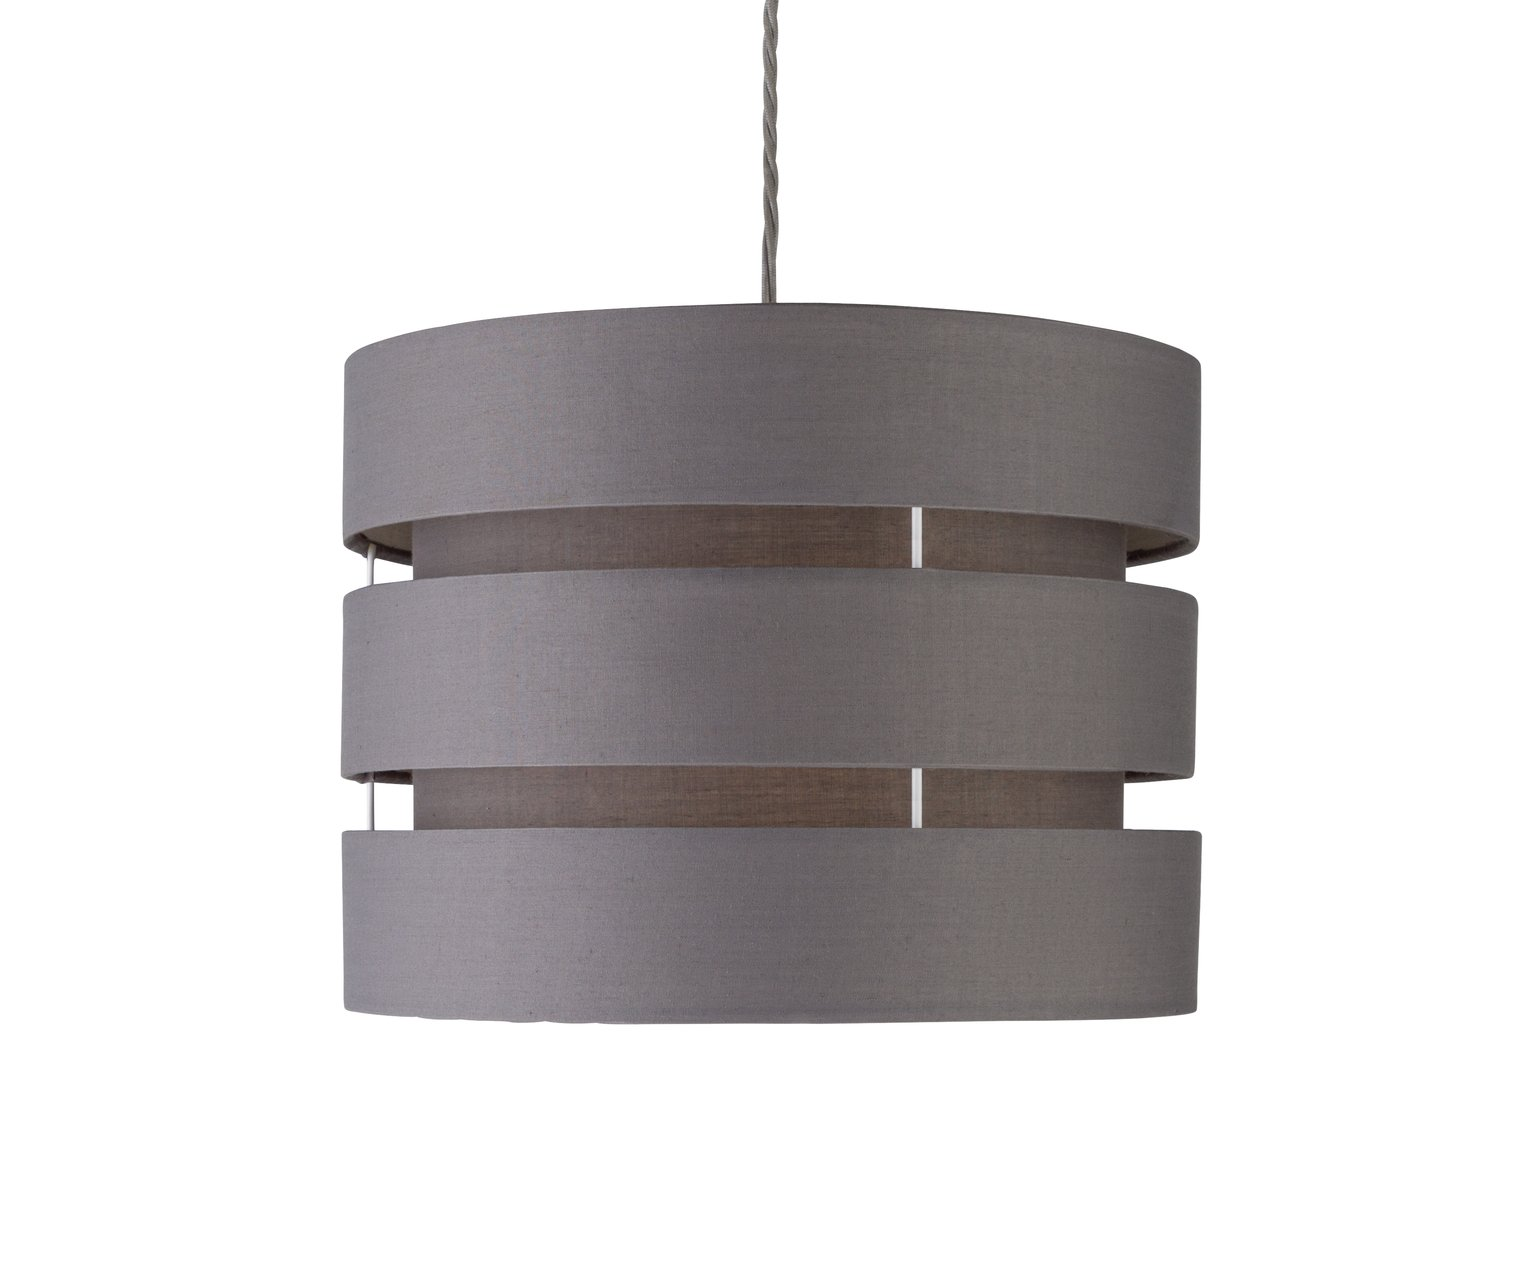 HOME 2 Tier Light Shade   Flint Grey